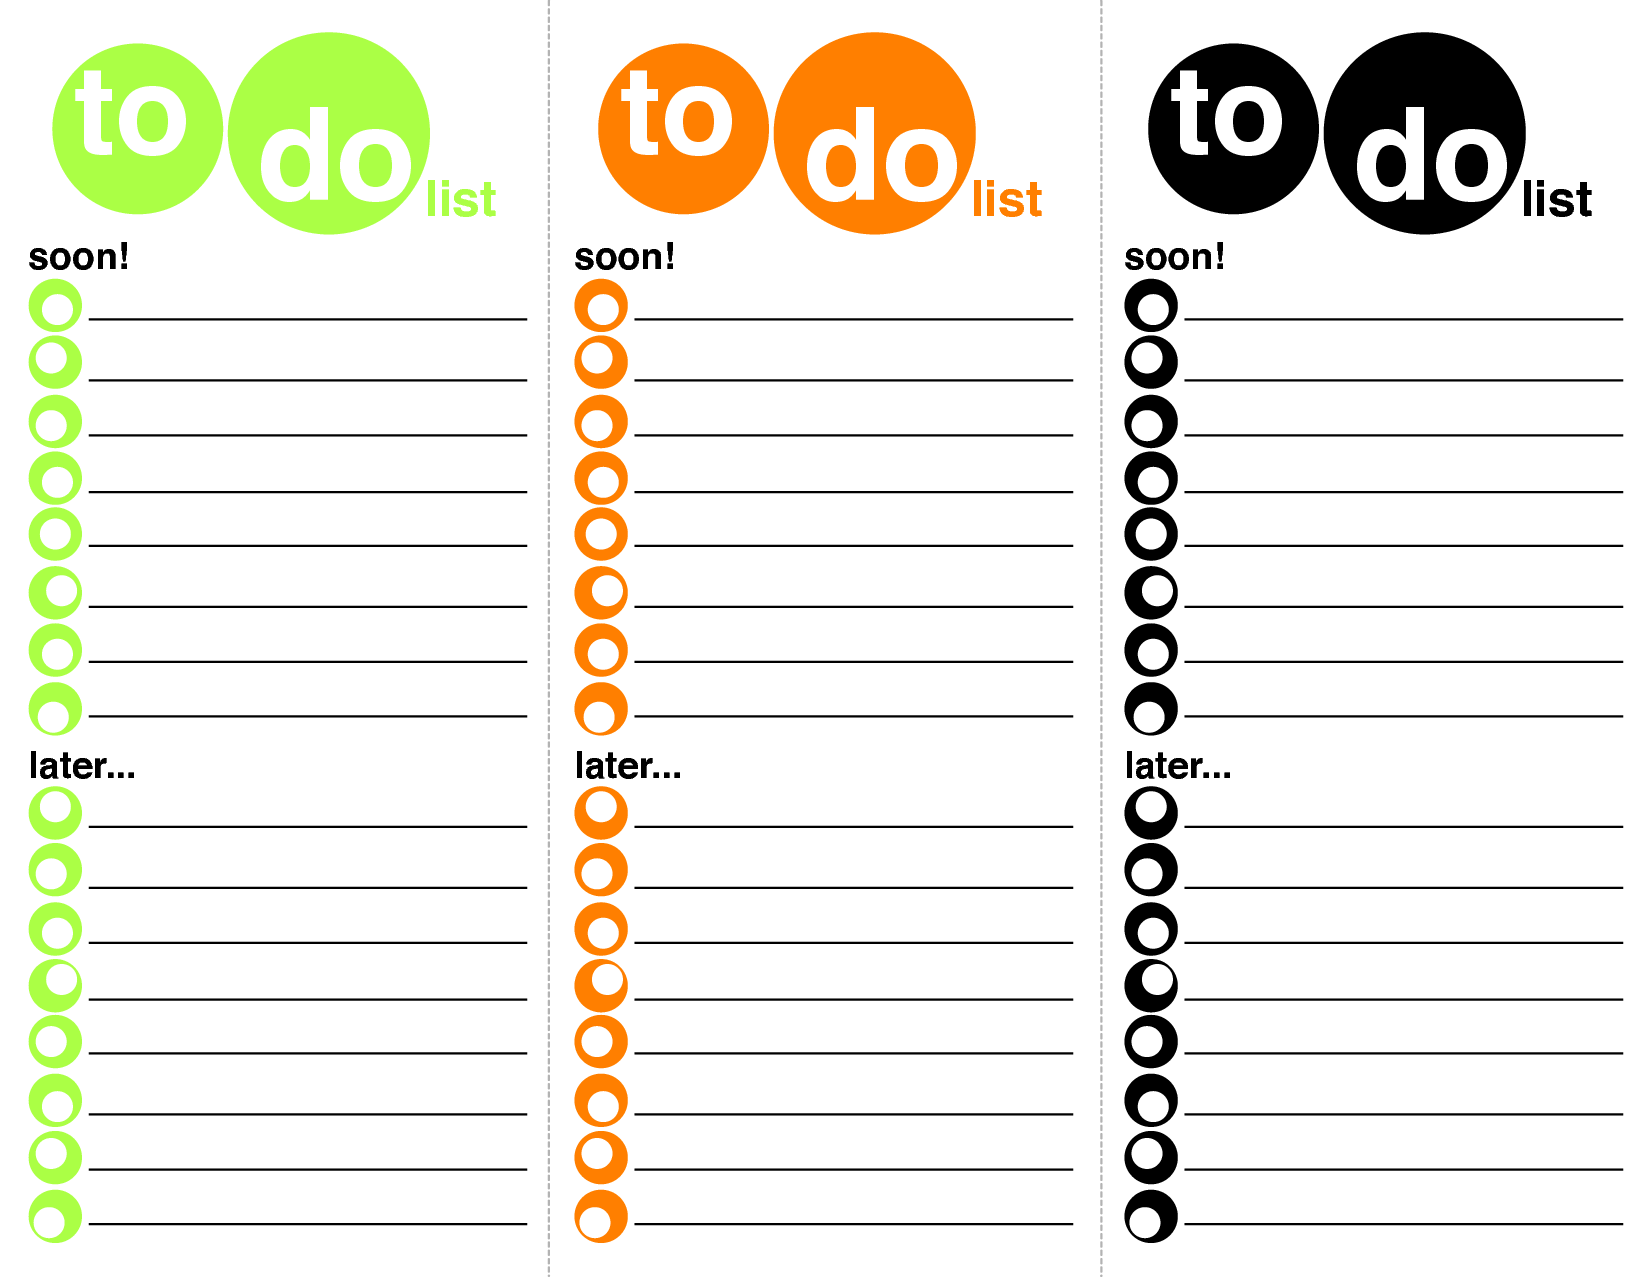 6 best images of to do list printable pdf free things to do | metal